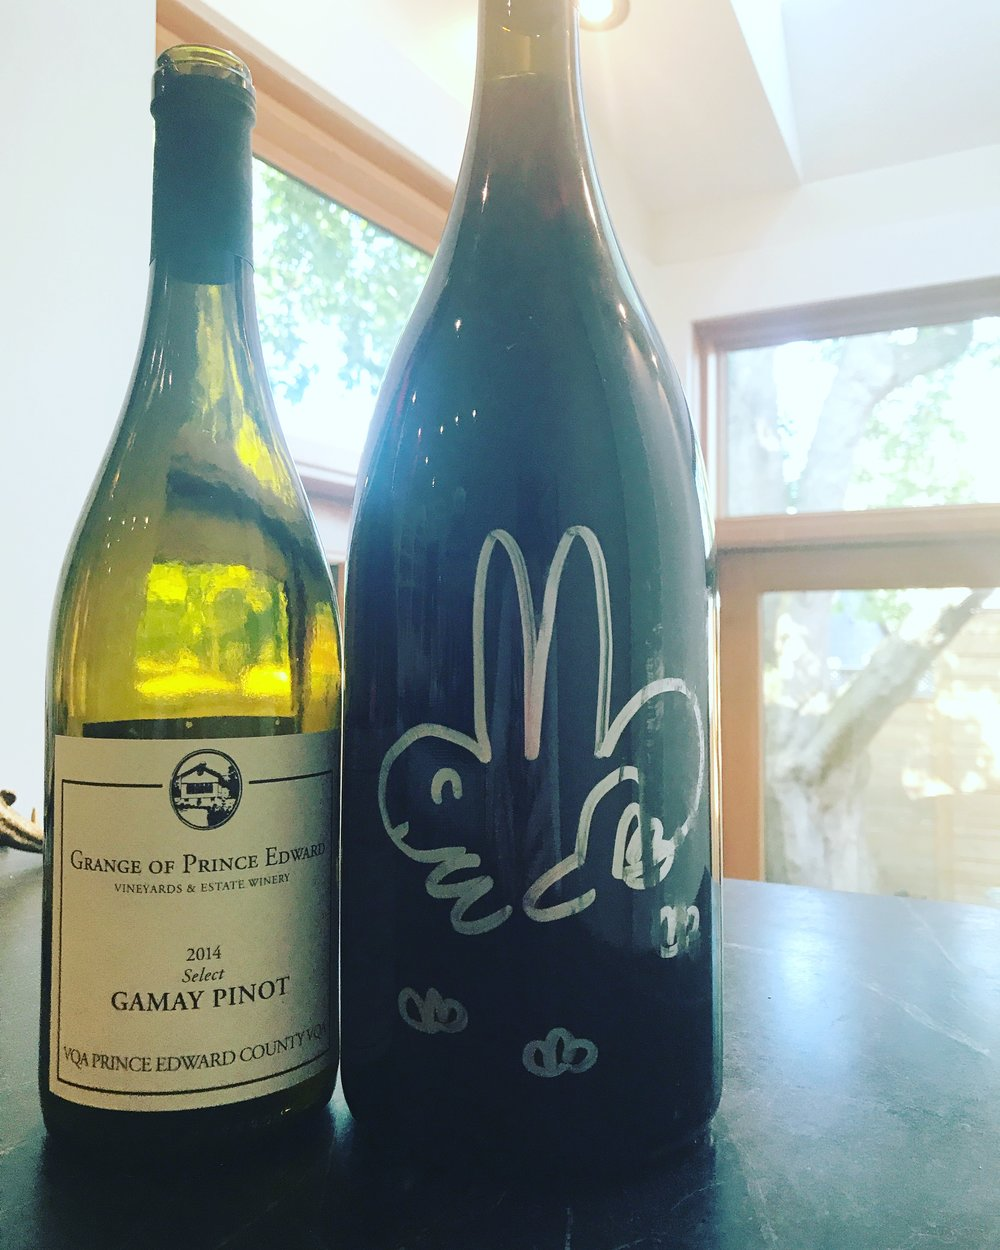 The Grange of Prince Edward County Bunny Wine Gamay/Pinot Noir 2014